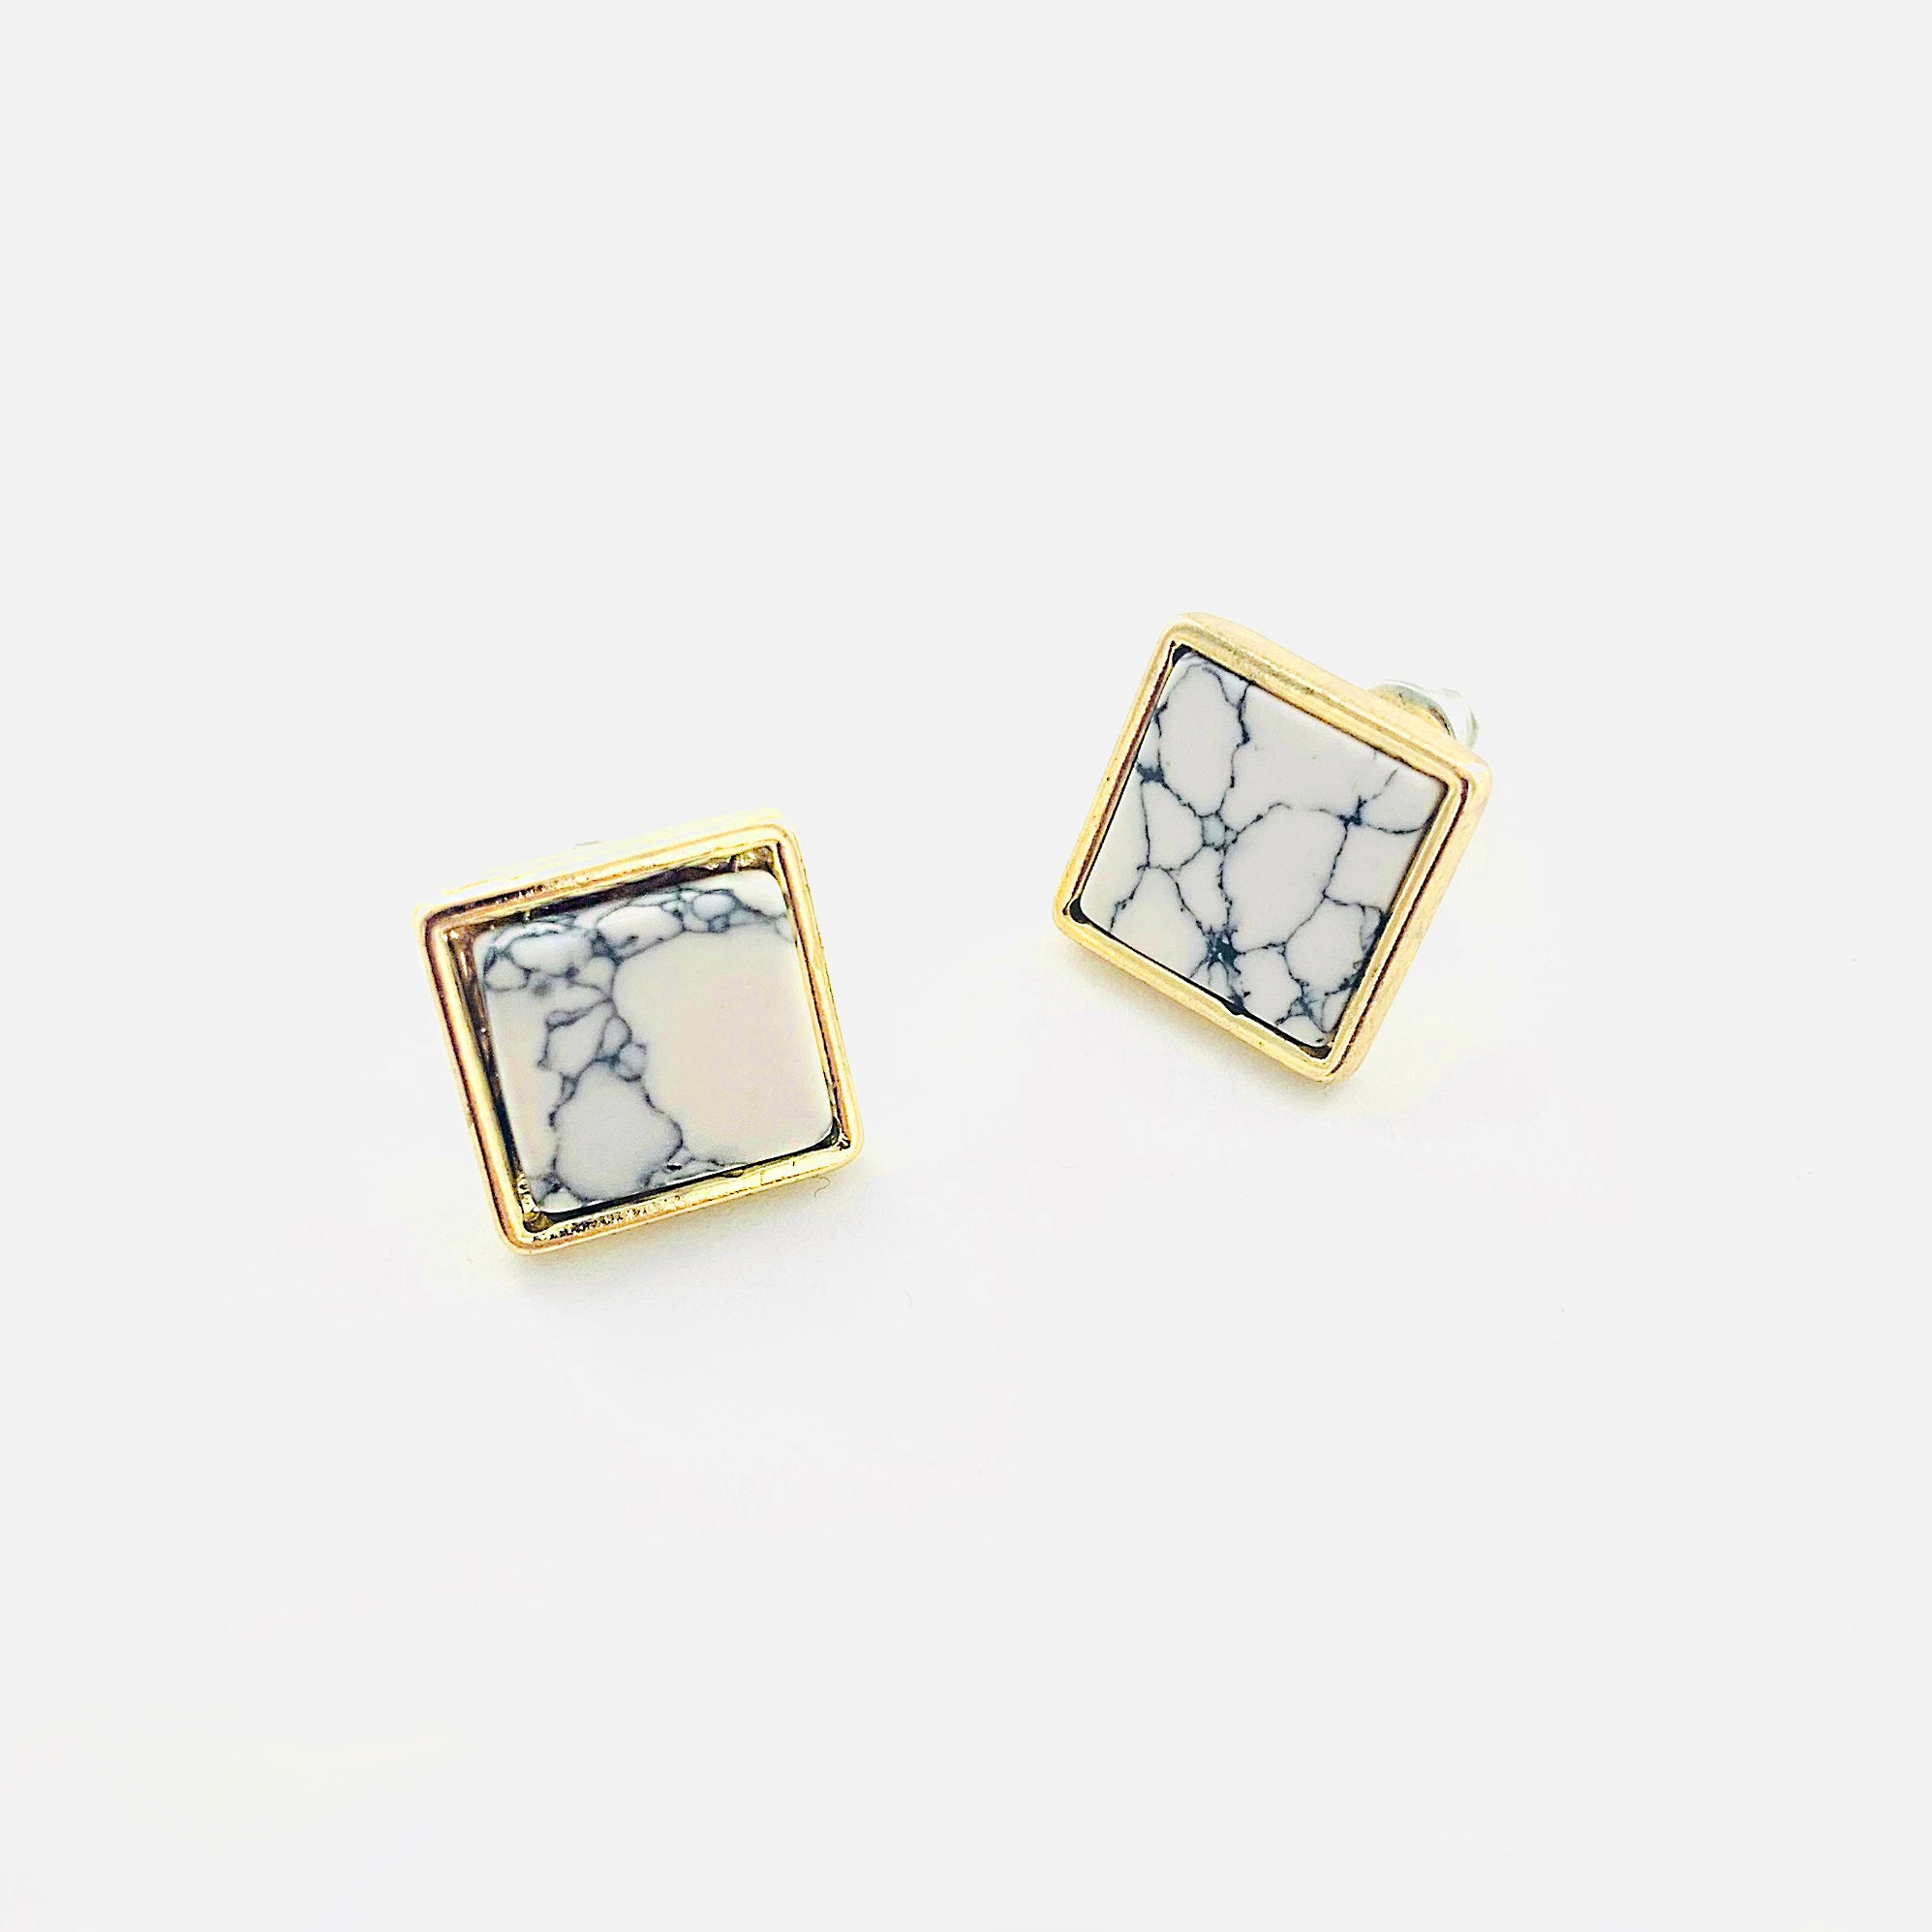 Marble studs with gold edged border